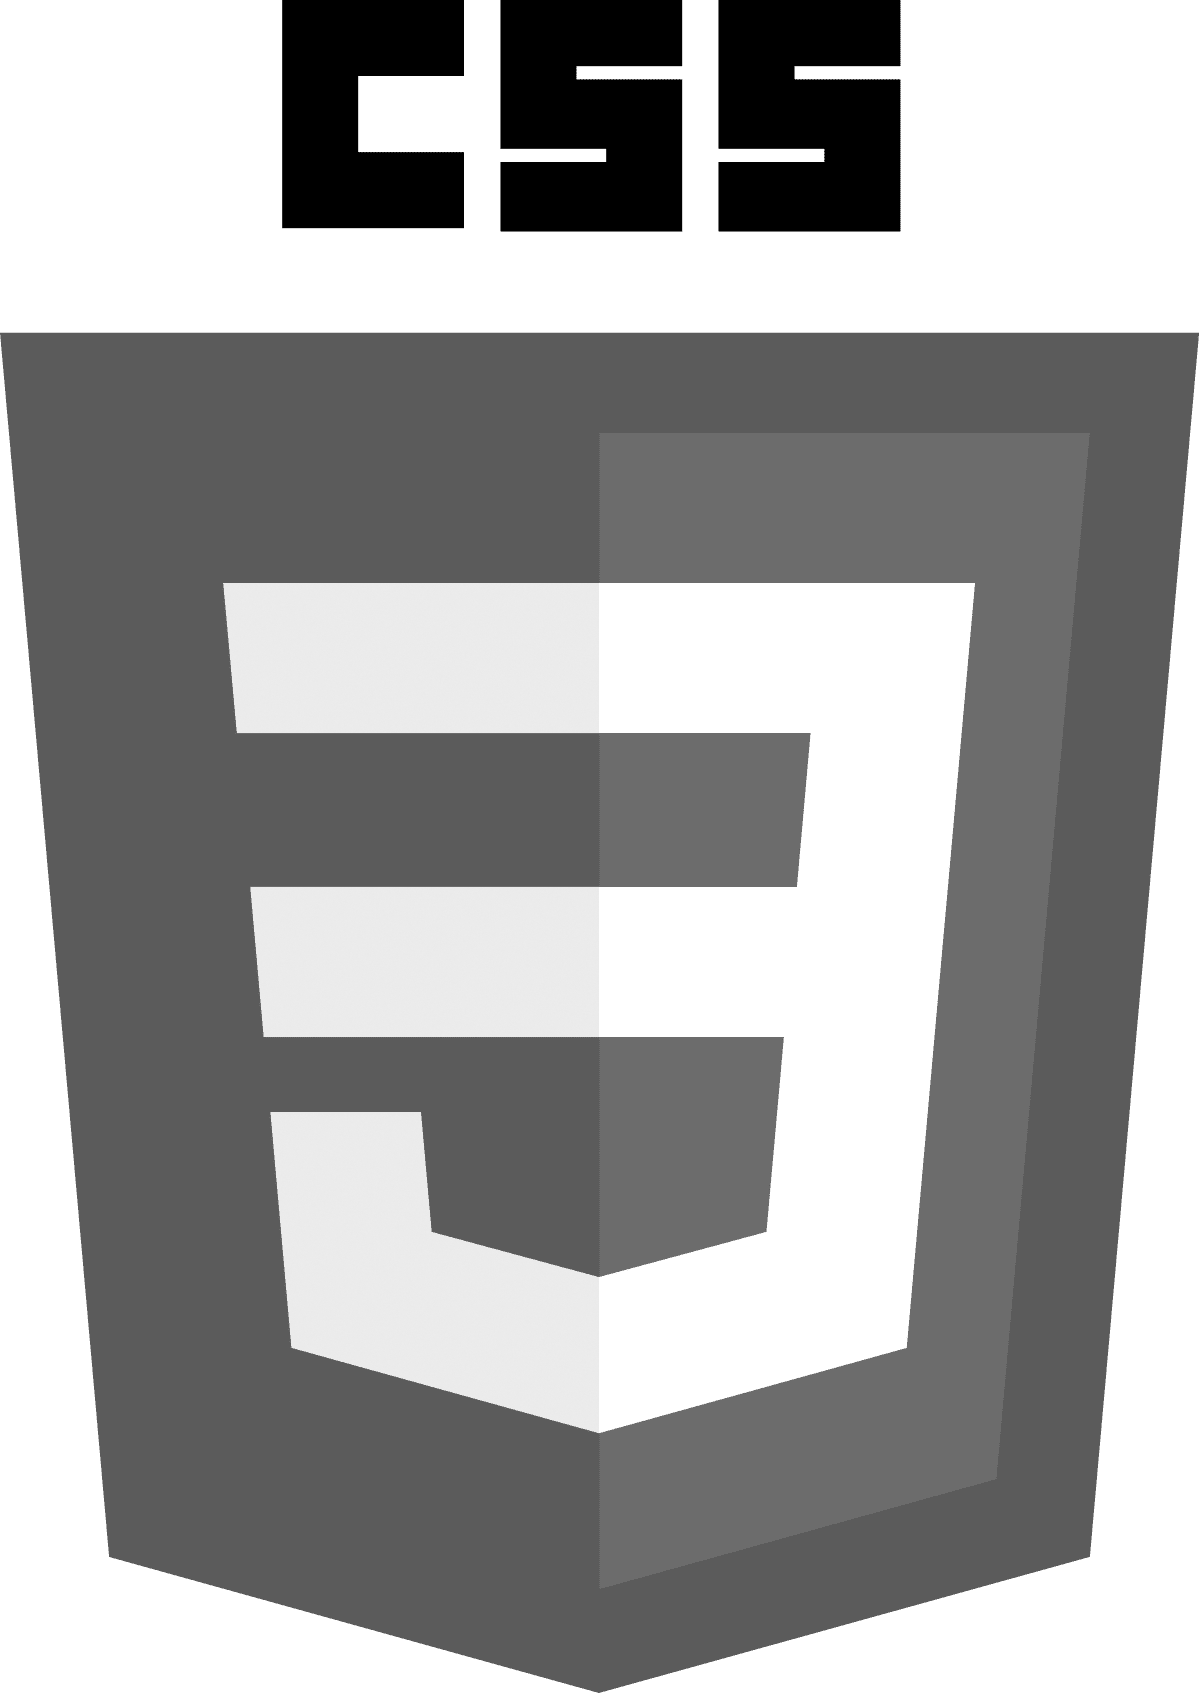 CSS3_logo_and_wordmark